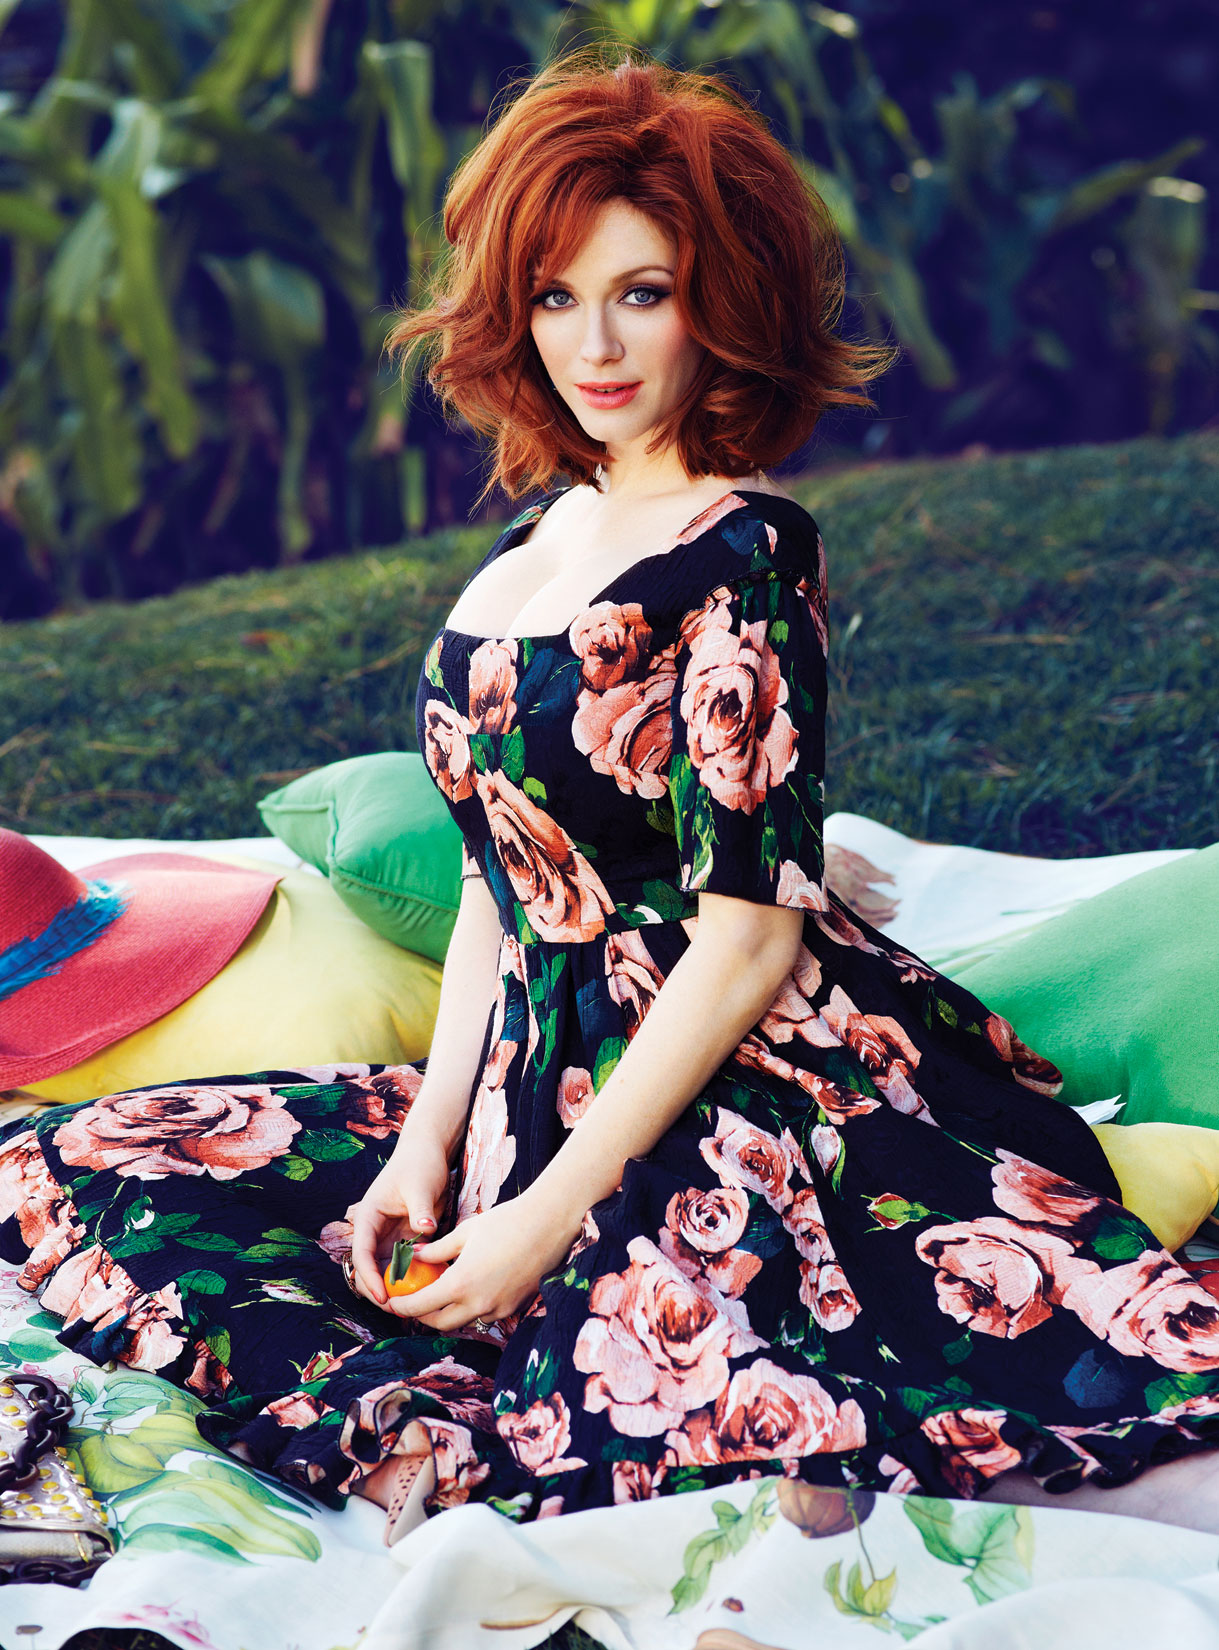 Mine very Who is redhead on madmen are